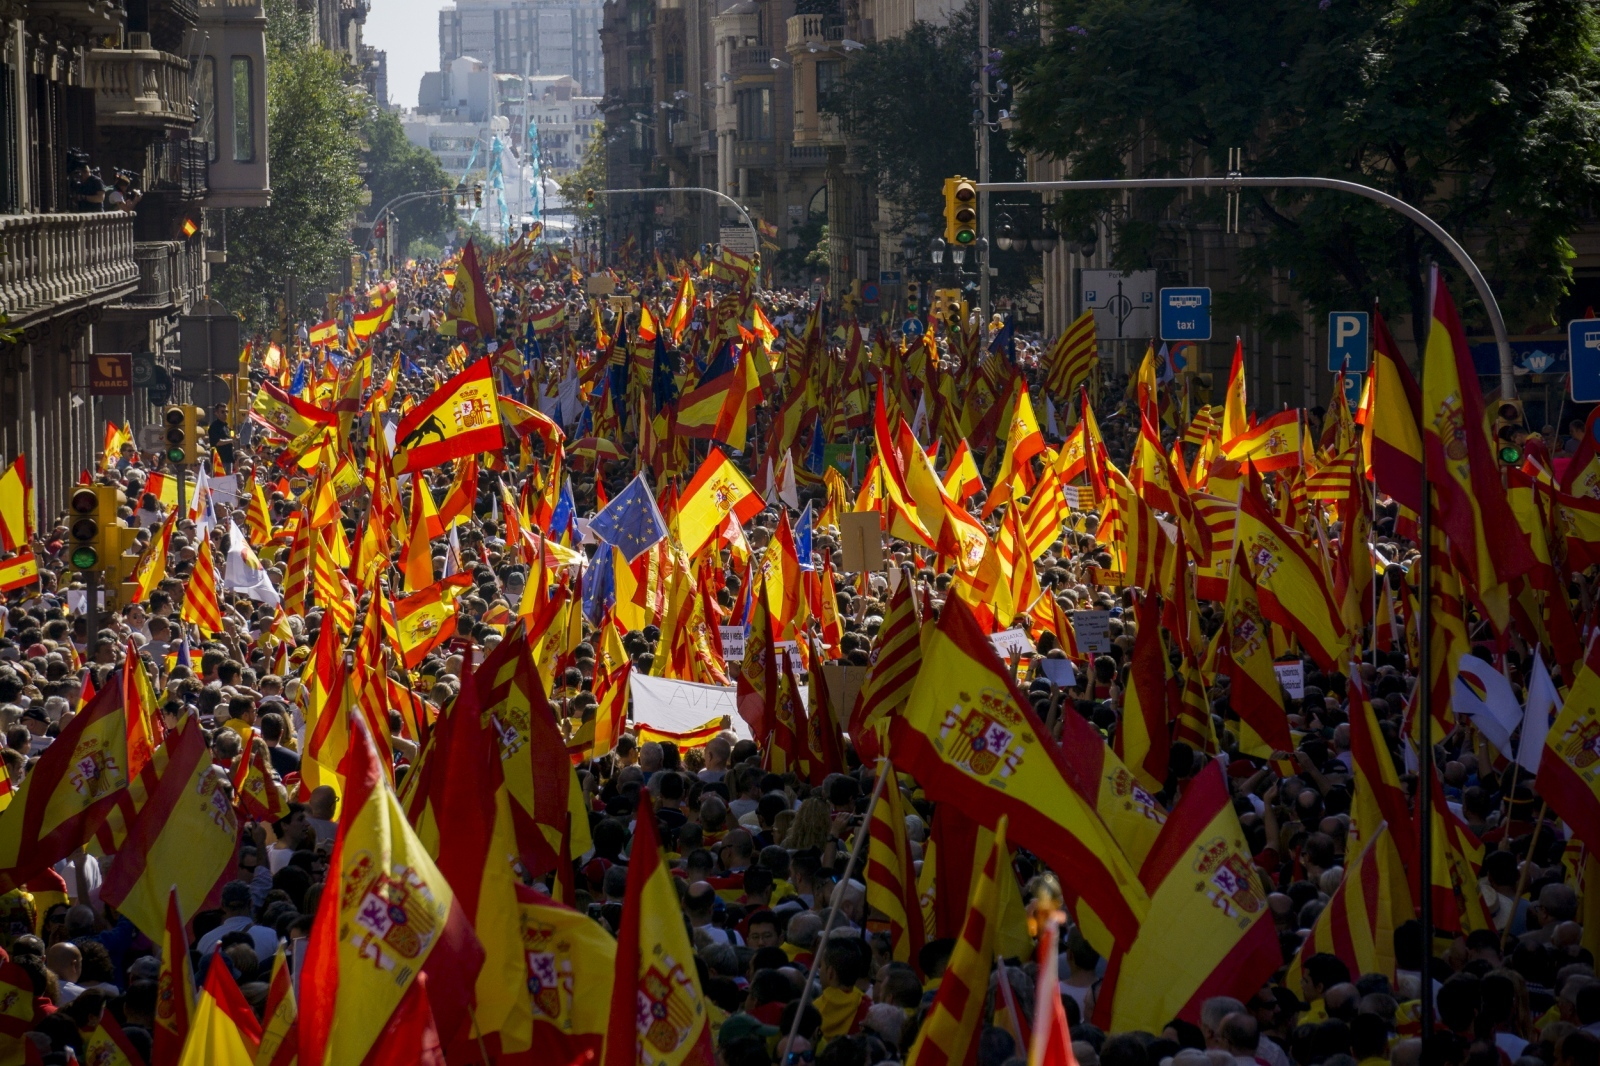 Hundreds of thousands of protesters fill Barcelona's Via Laietana, Oct. 8, 2017. Organized by the Societat Civil Catalana, the march drew 350,000 atendees according to the Guardia Urbana and just under 1 million according to the organizers.